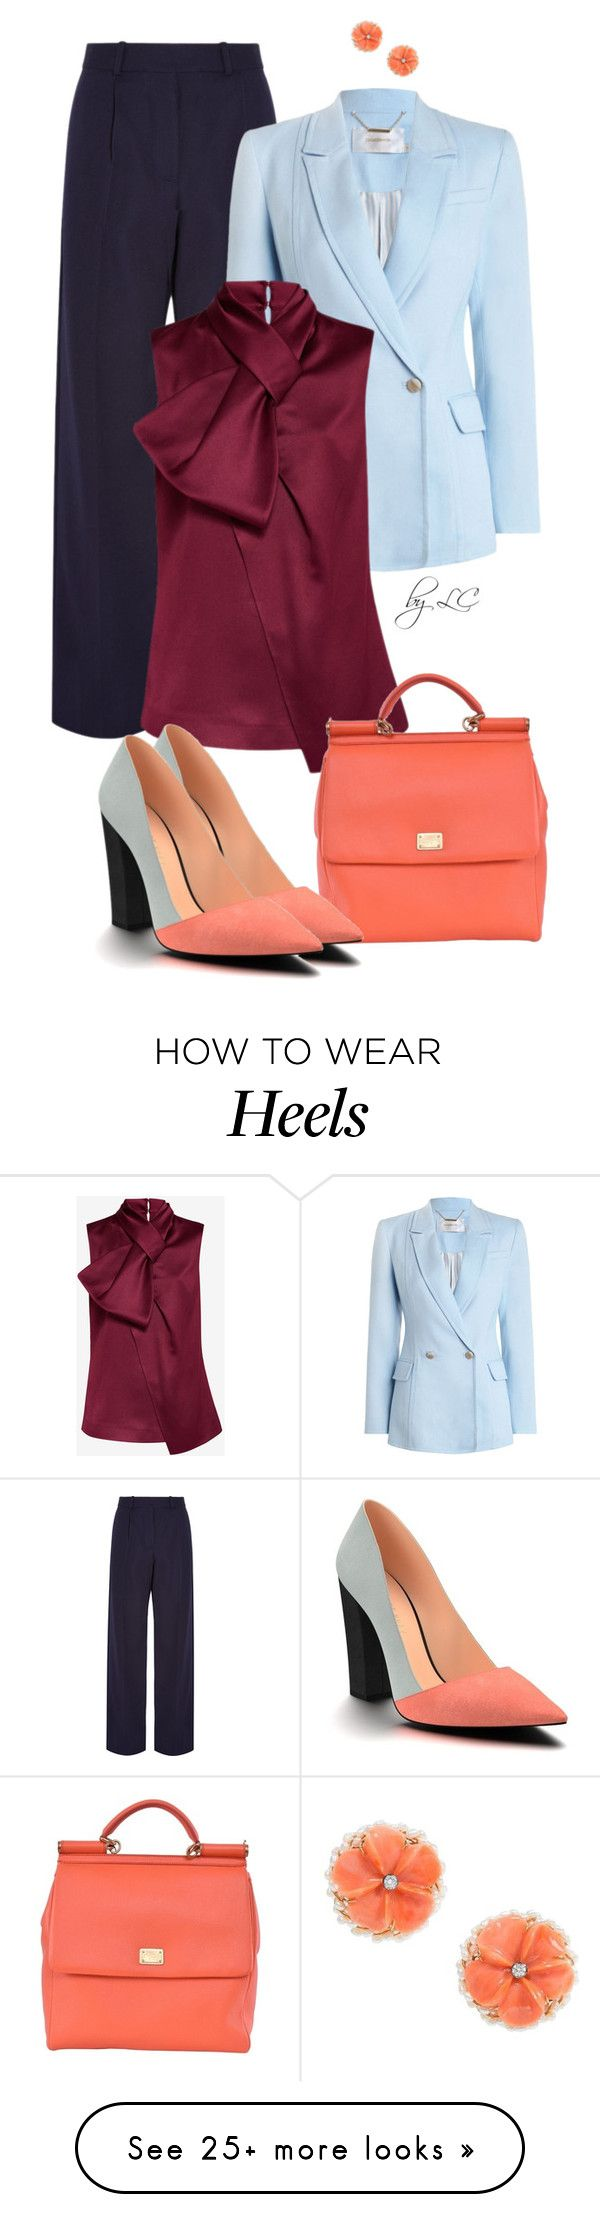 """""""Untitled #450"""" by explorer-14541556185 on Polyvore featuring Victoria Beckham, Zimmermann, Ted Baker, Dolce&Gabbana and Shoes of Prey"""